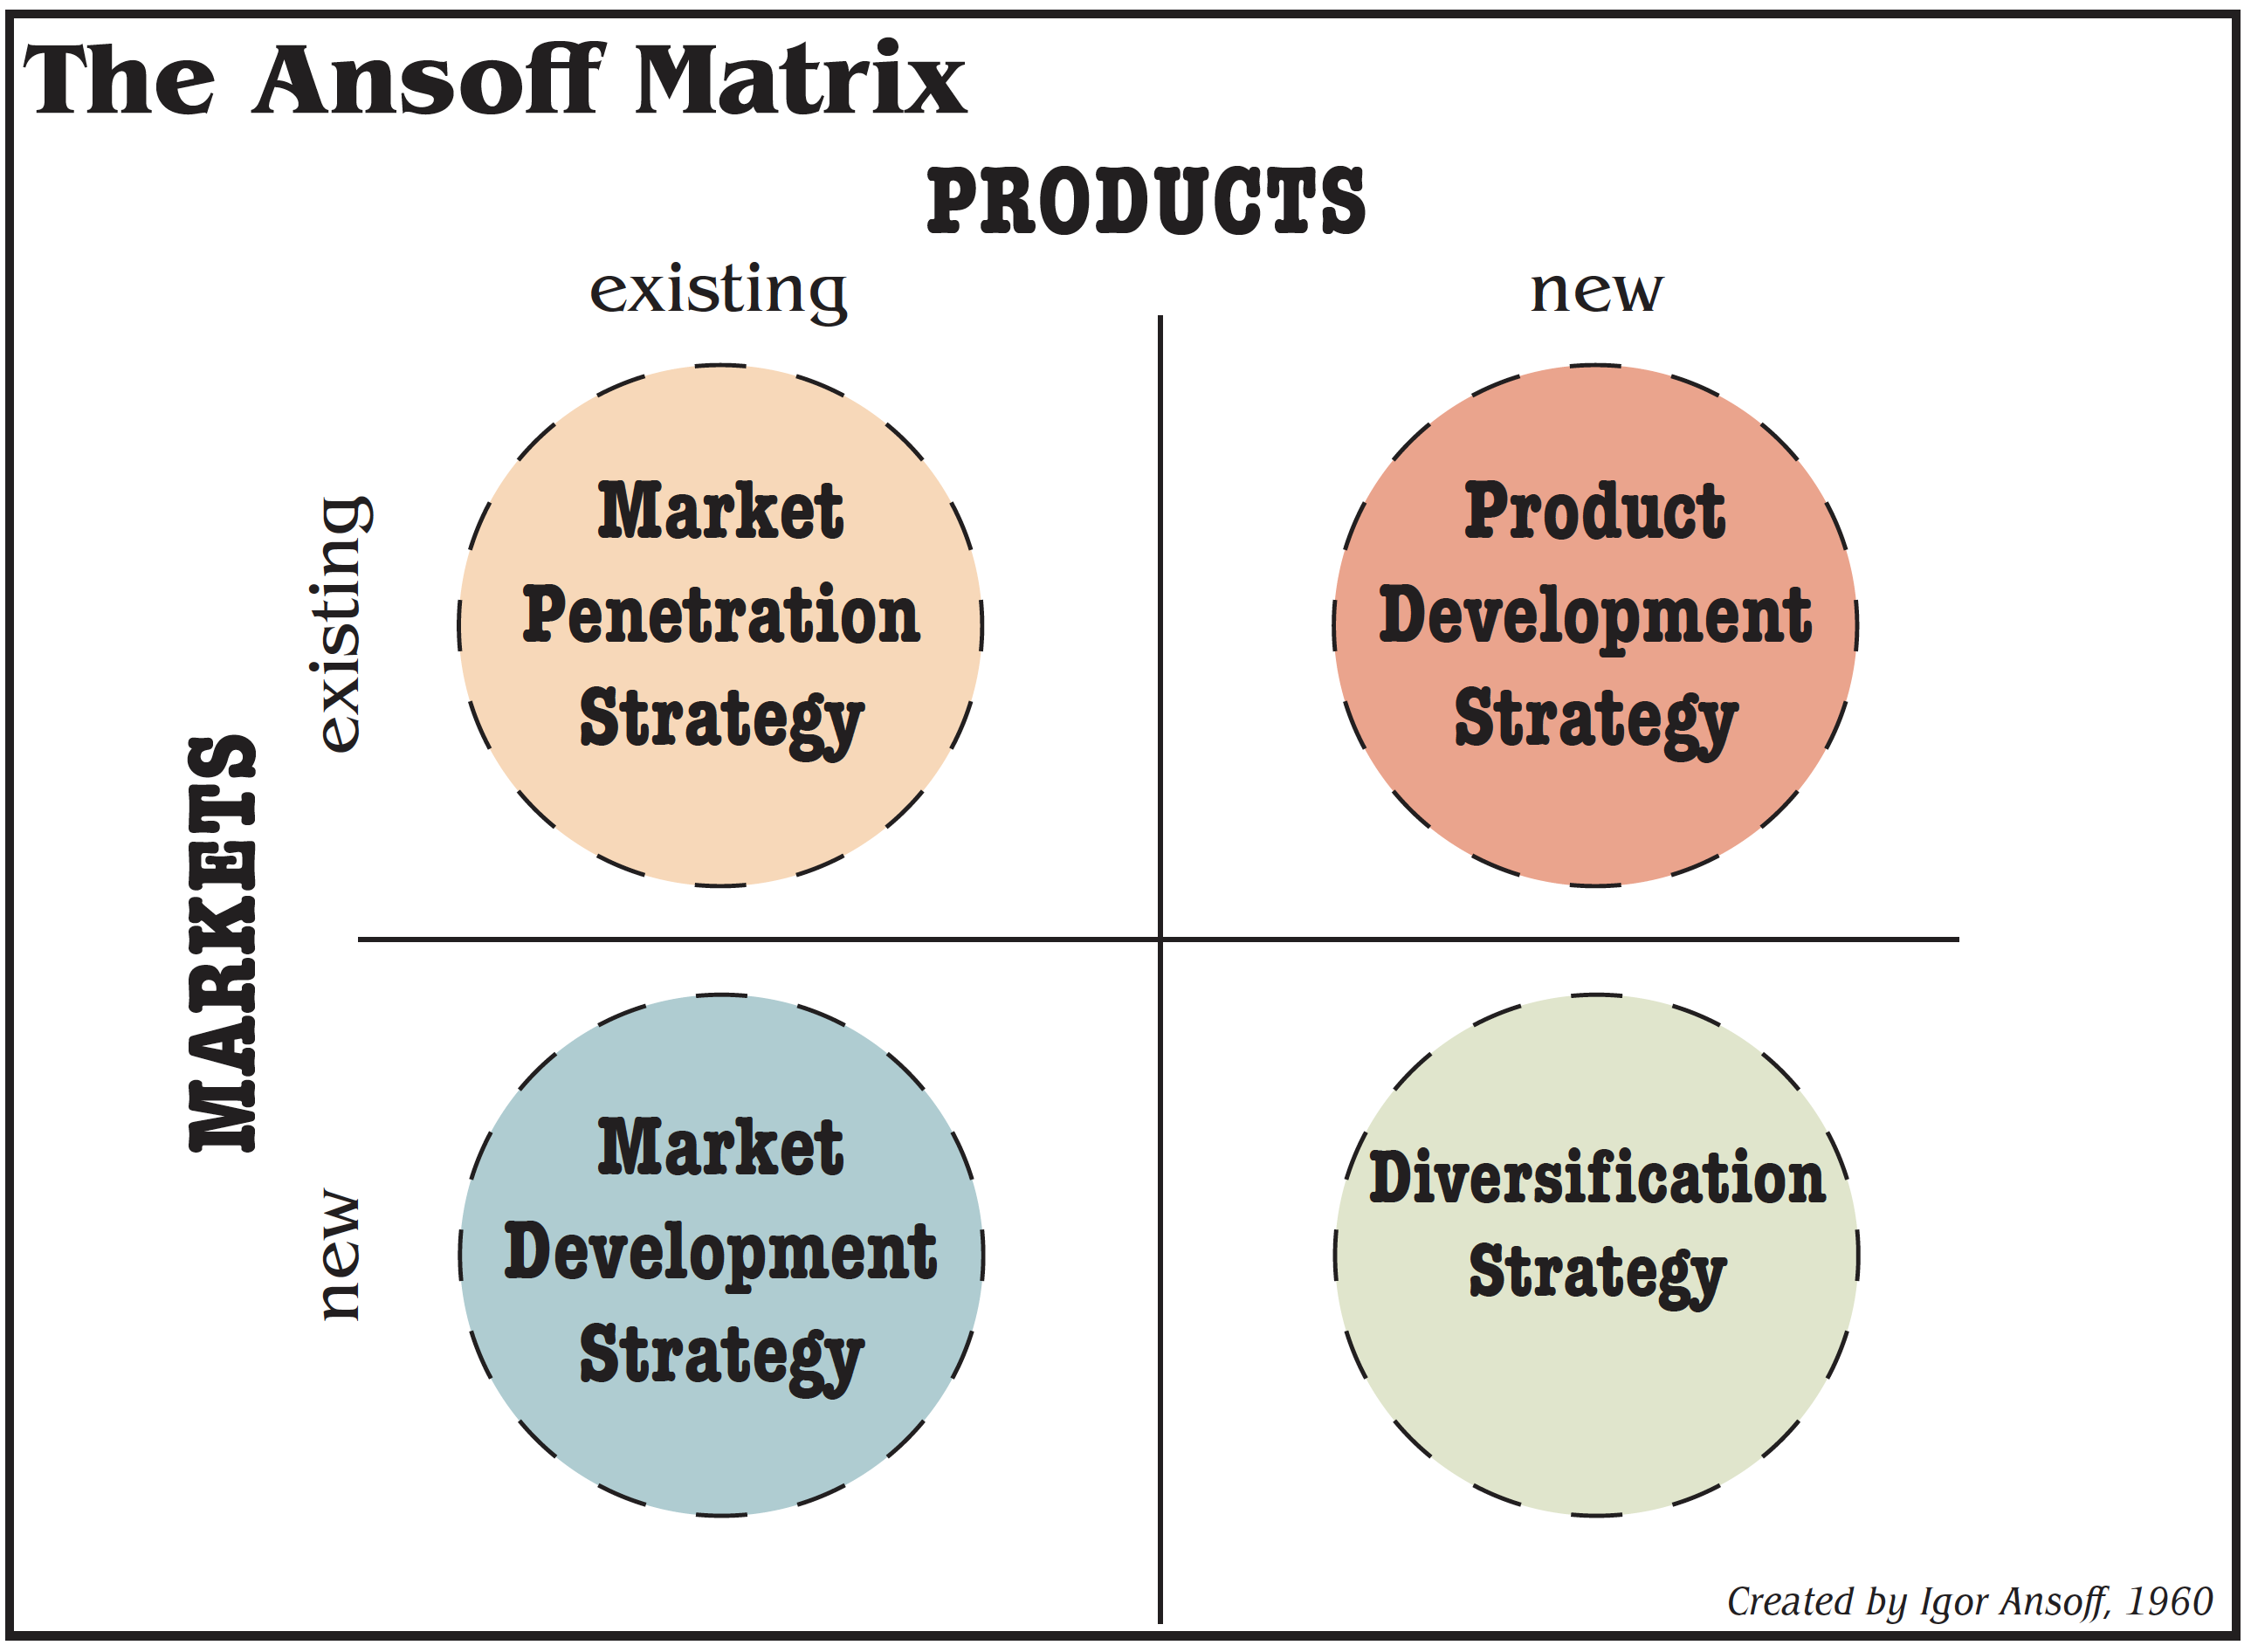 a diagram showing the ansoff matrix